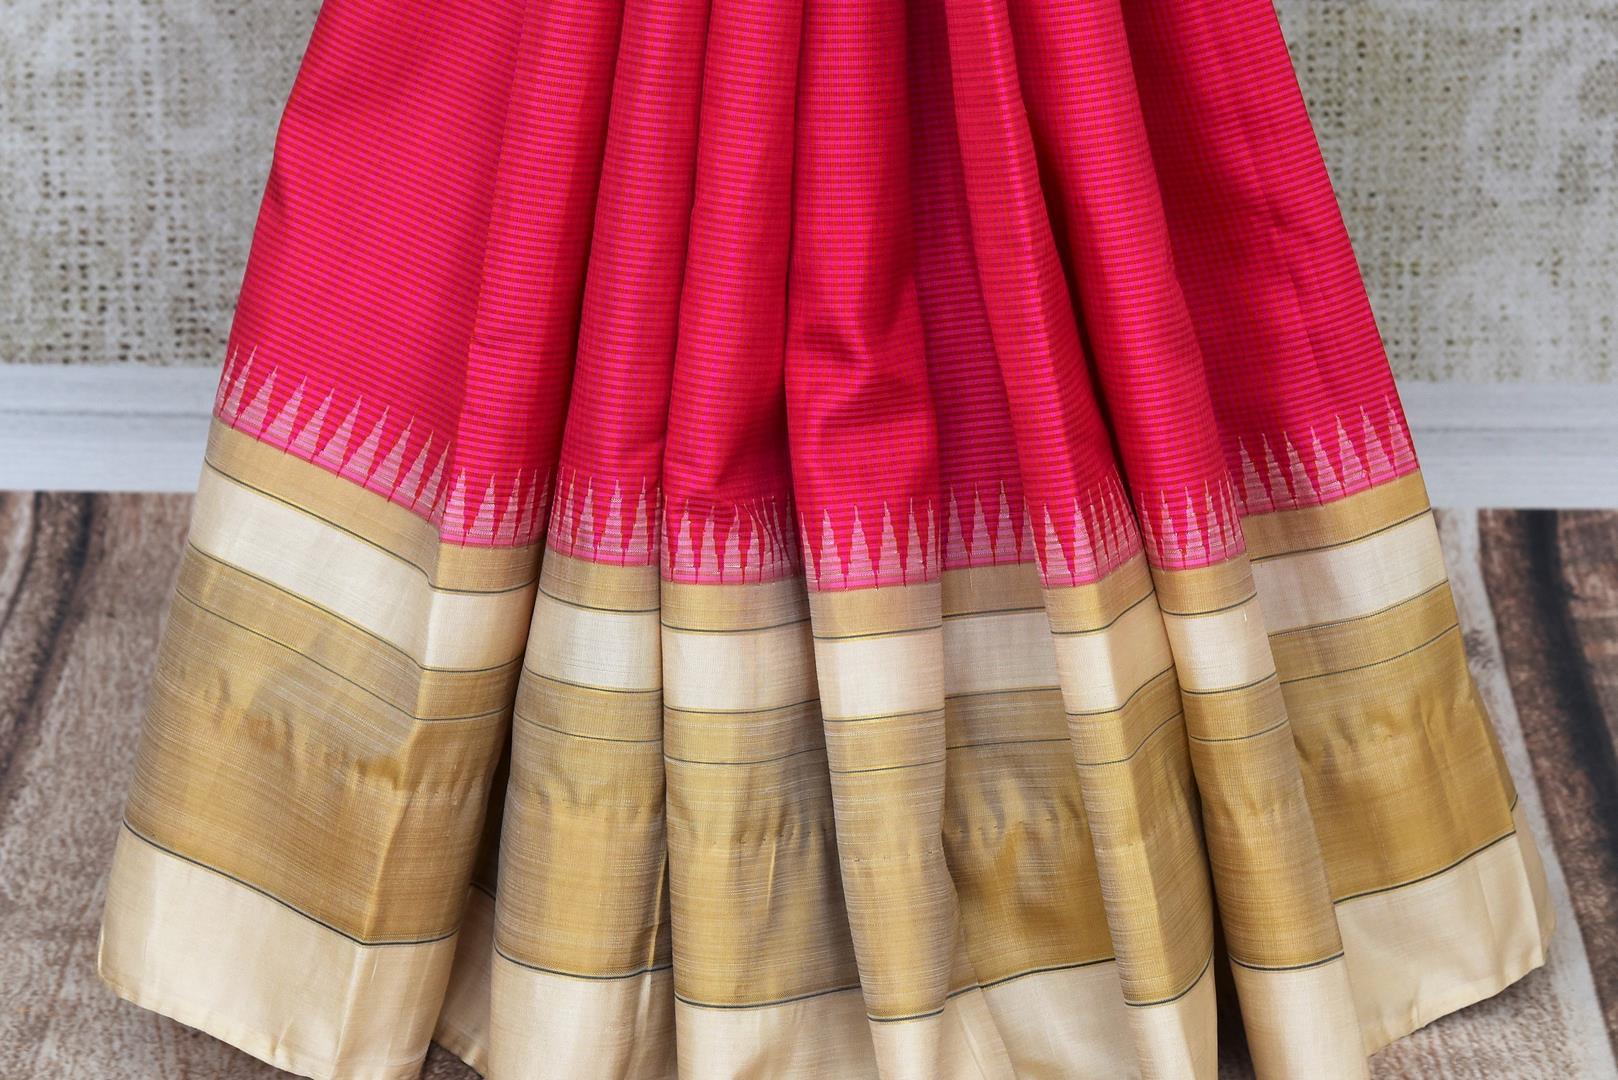 Elegant pink Kanjivaram silk saree buy online in USA. It comes with an embroidered saree blouse to elevate your Indian sari look. If you are looking for Indian designer silk sarees in USA, then Pure Elegance clothing store is your one-stop solution, shop now.-pleats